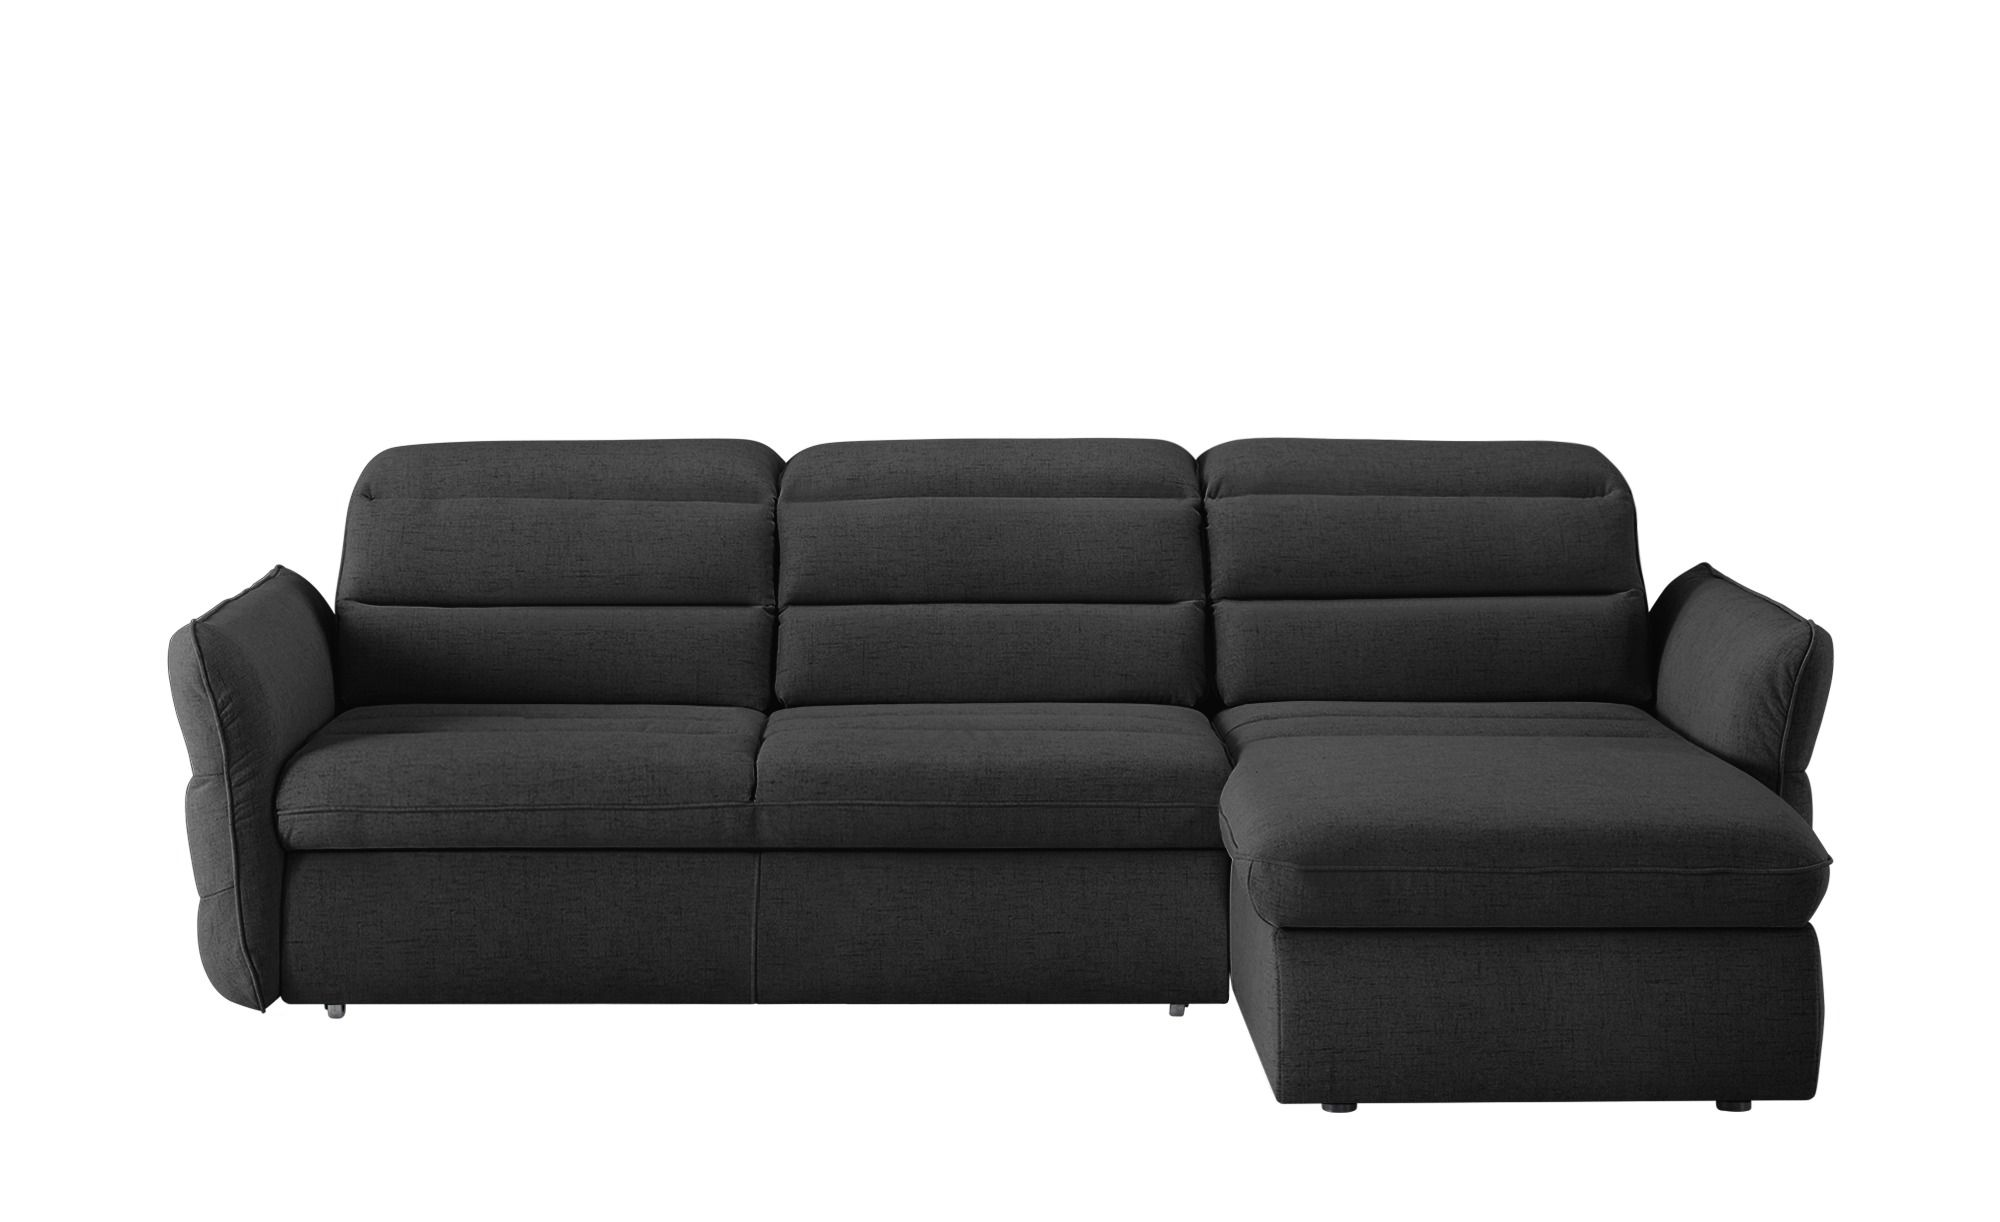 Pin by ladendirekt on sofas couches gro e sofas sofa for Wohnlandschaft sandra